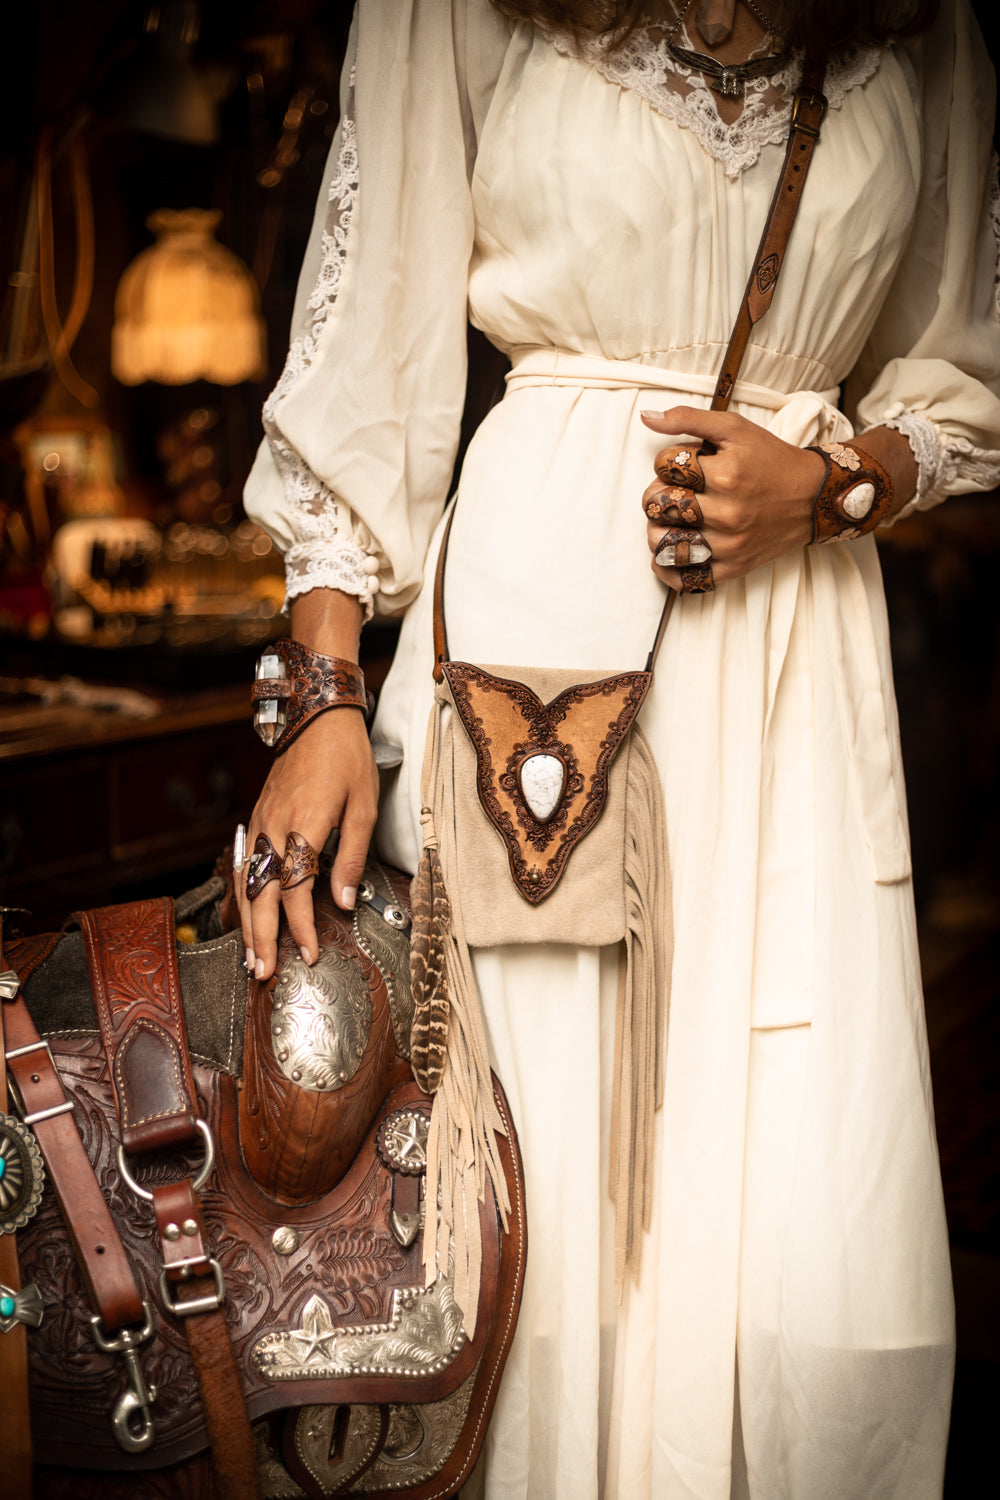 Gypsy Wanderer Phone Pouch in cream suede topped off with a white Howlite stone inlay - $480